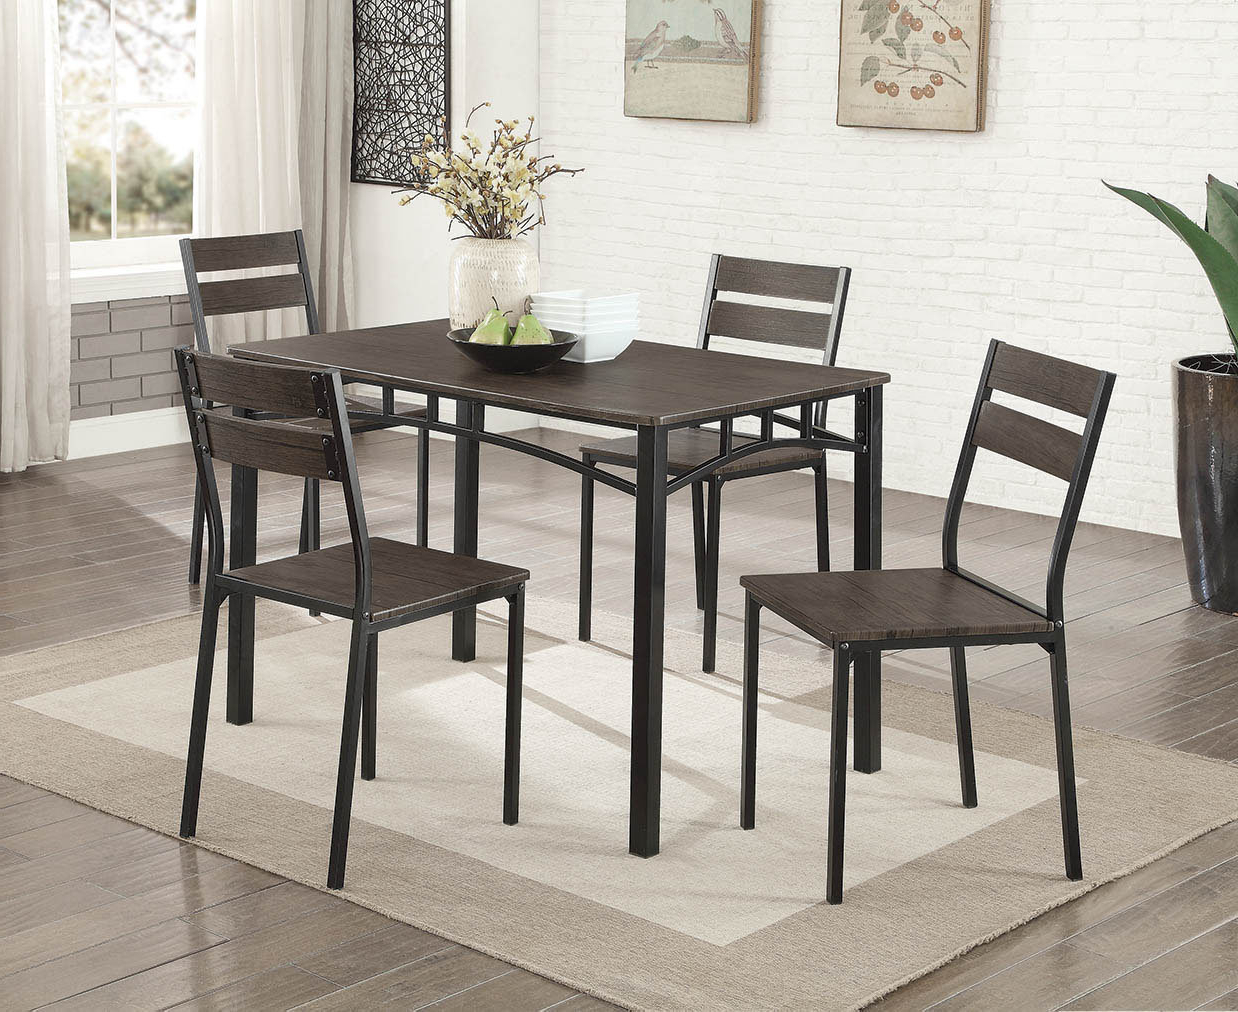 Wayfair With Casiano 5 Piece Dining Sets (View 24 of 25)